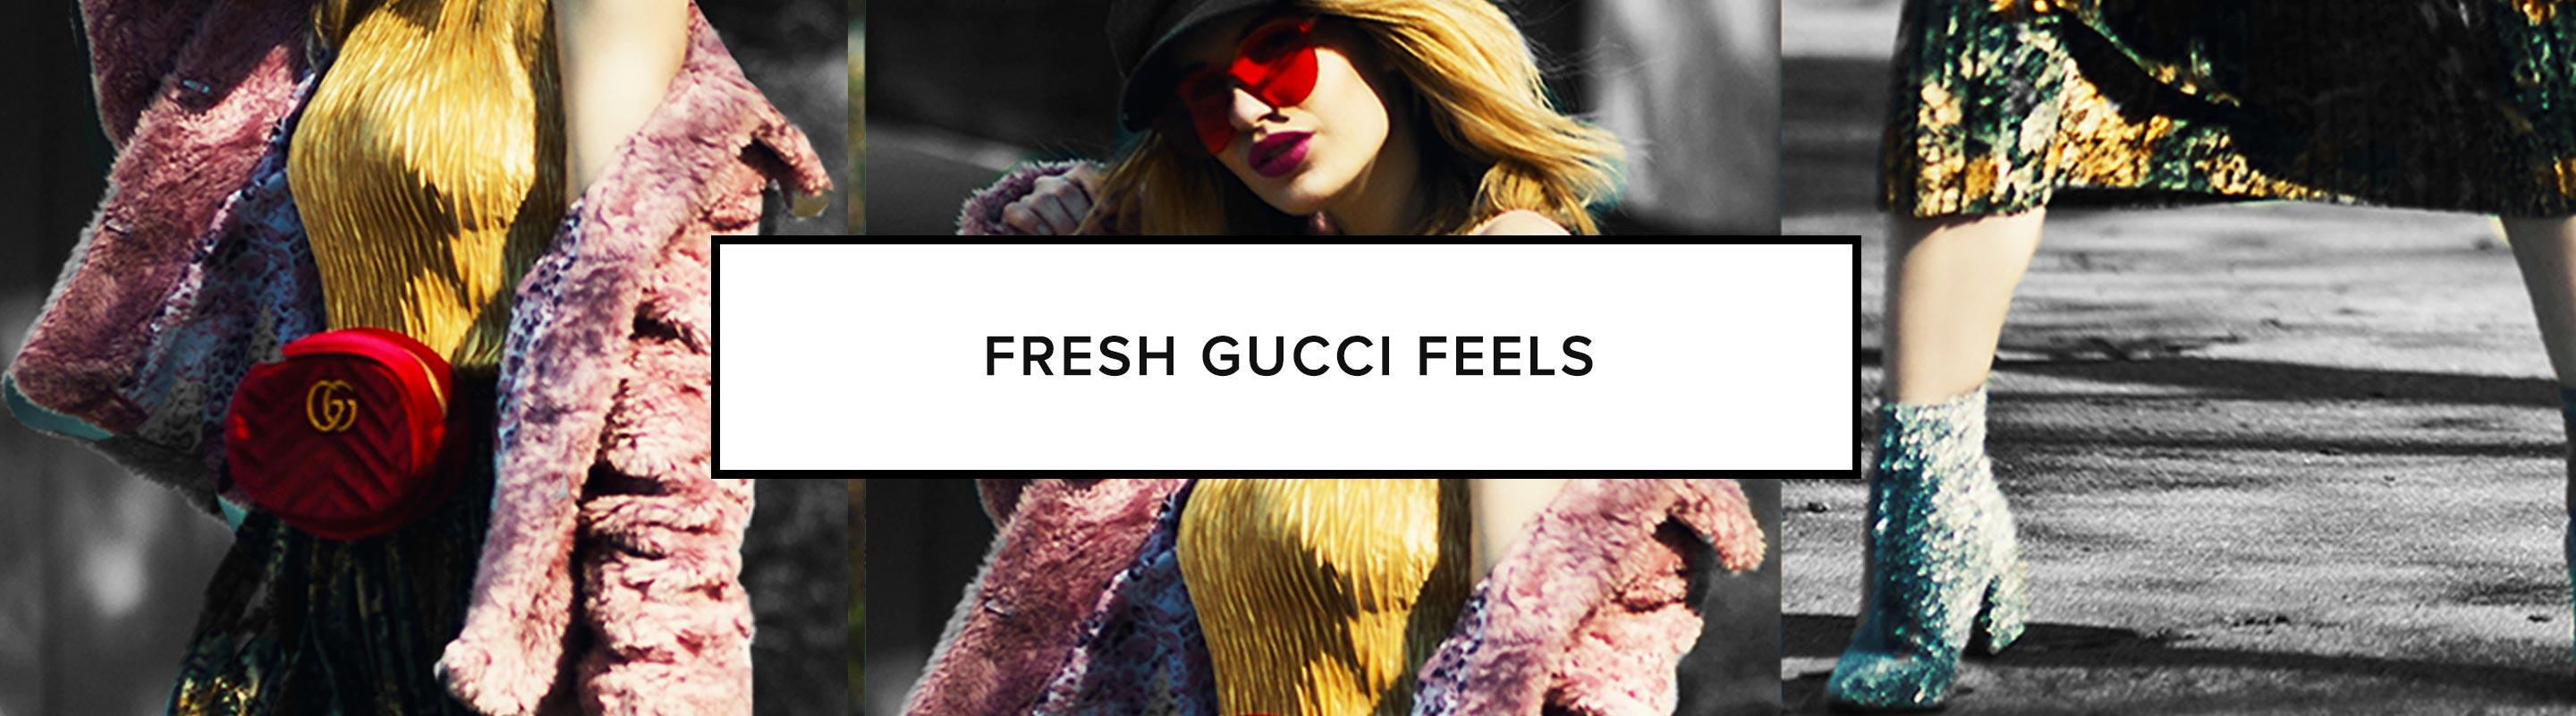 Fresh Gucci Feels